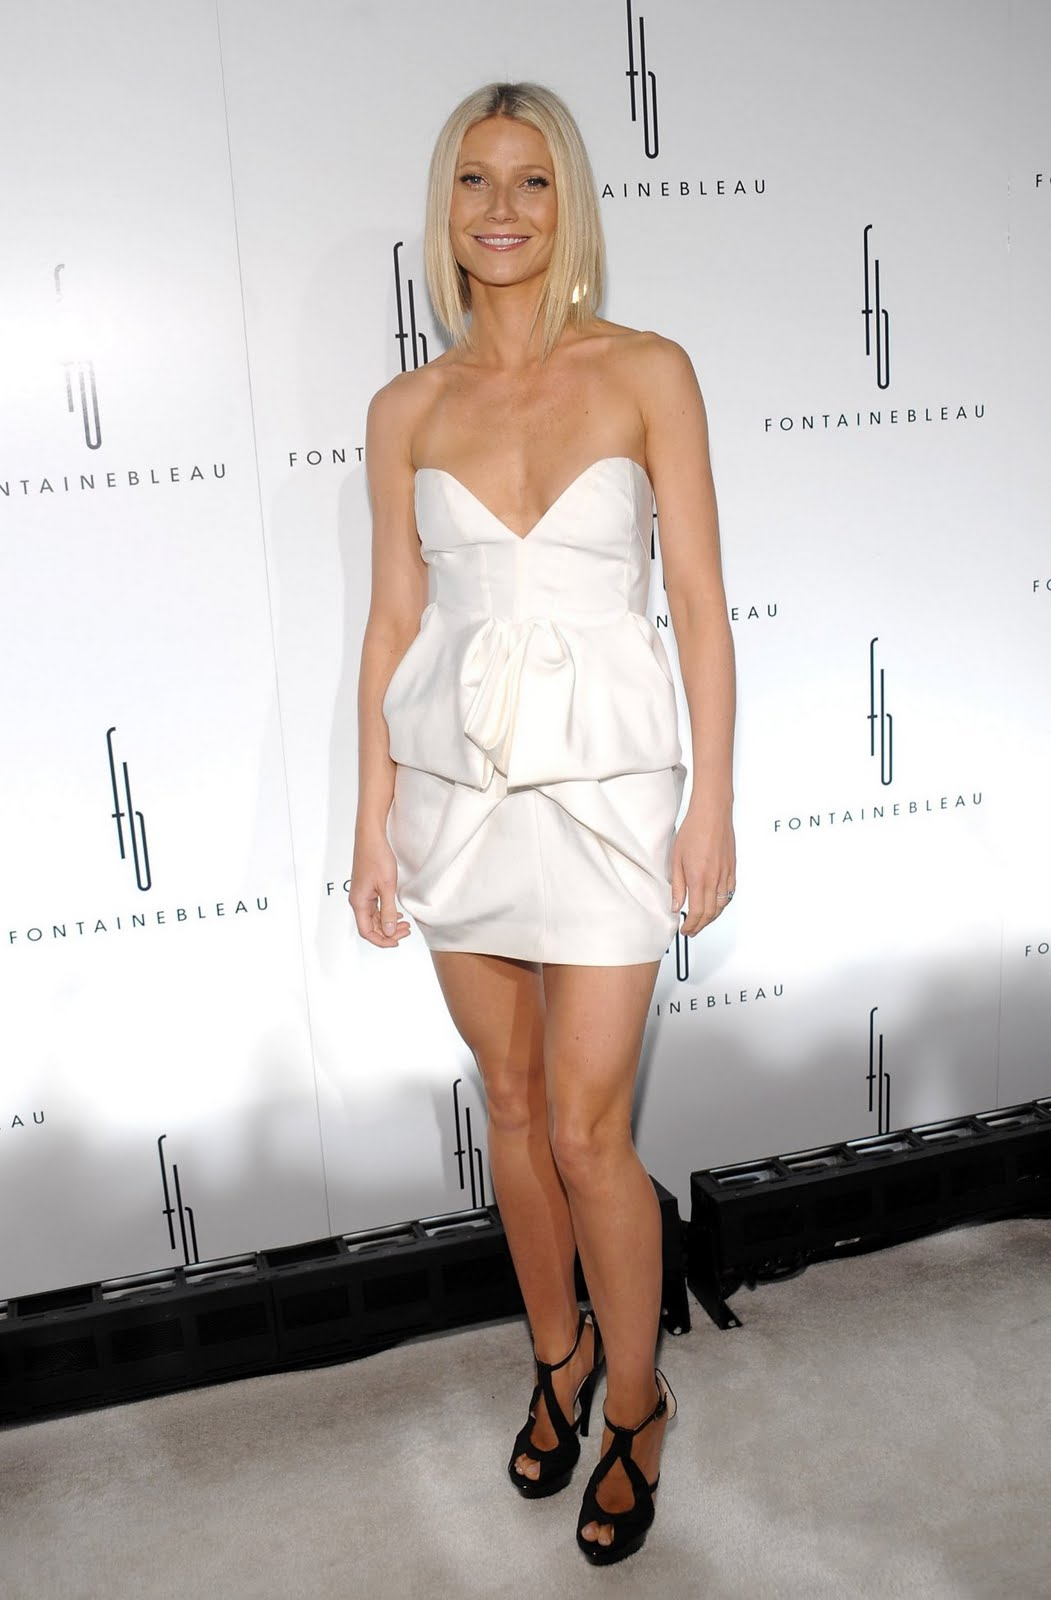 http://1.bp.blogspot.com/-lyApemF9Uz0/TcnEeR333JI/AAAAAAAAAH4/rQfa2lQs6xM/s1600/Gwyneth-Paltrow-in-White-Dress.jpg